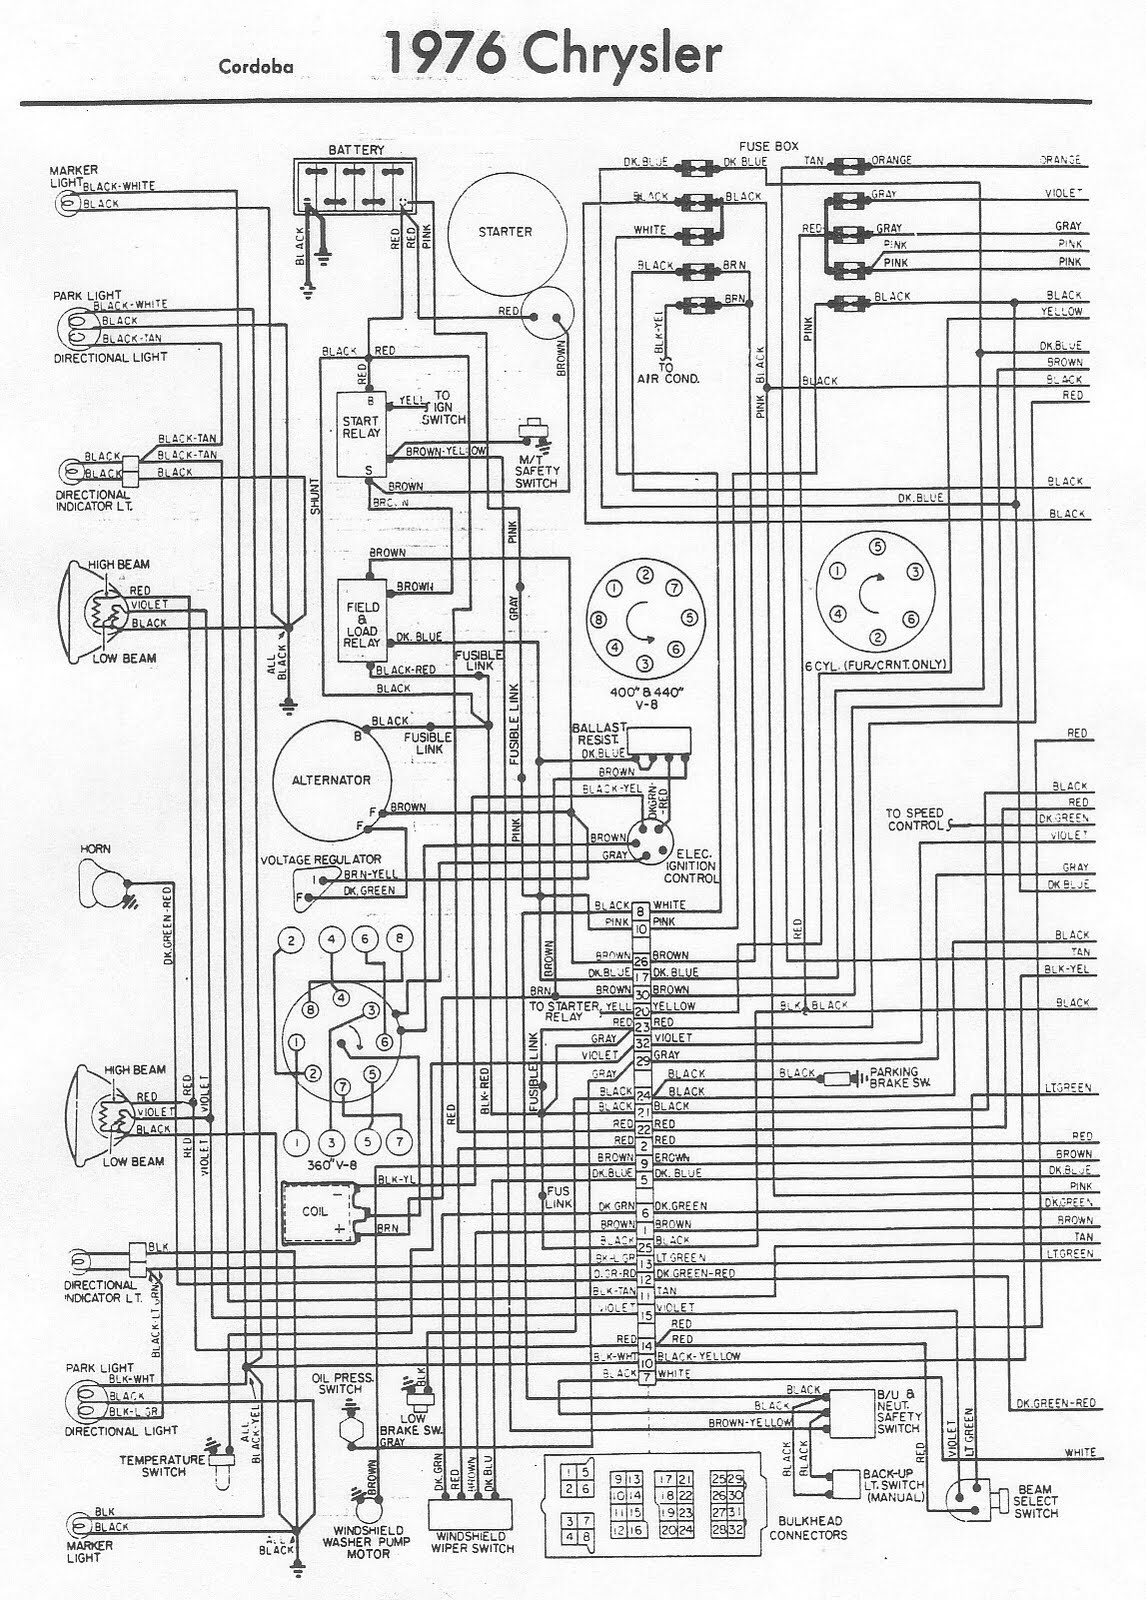 Toyota Headlight Wiring Diagram Color Codes Free Auto Wiring Diagram 1976 Chrysler Cordoba Engine